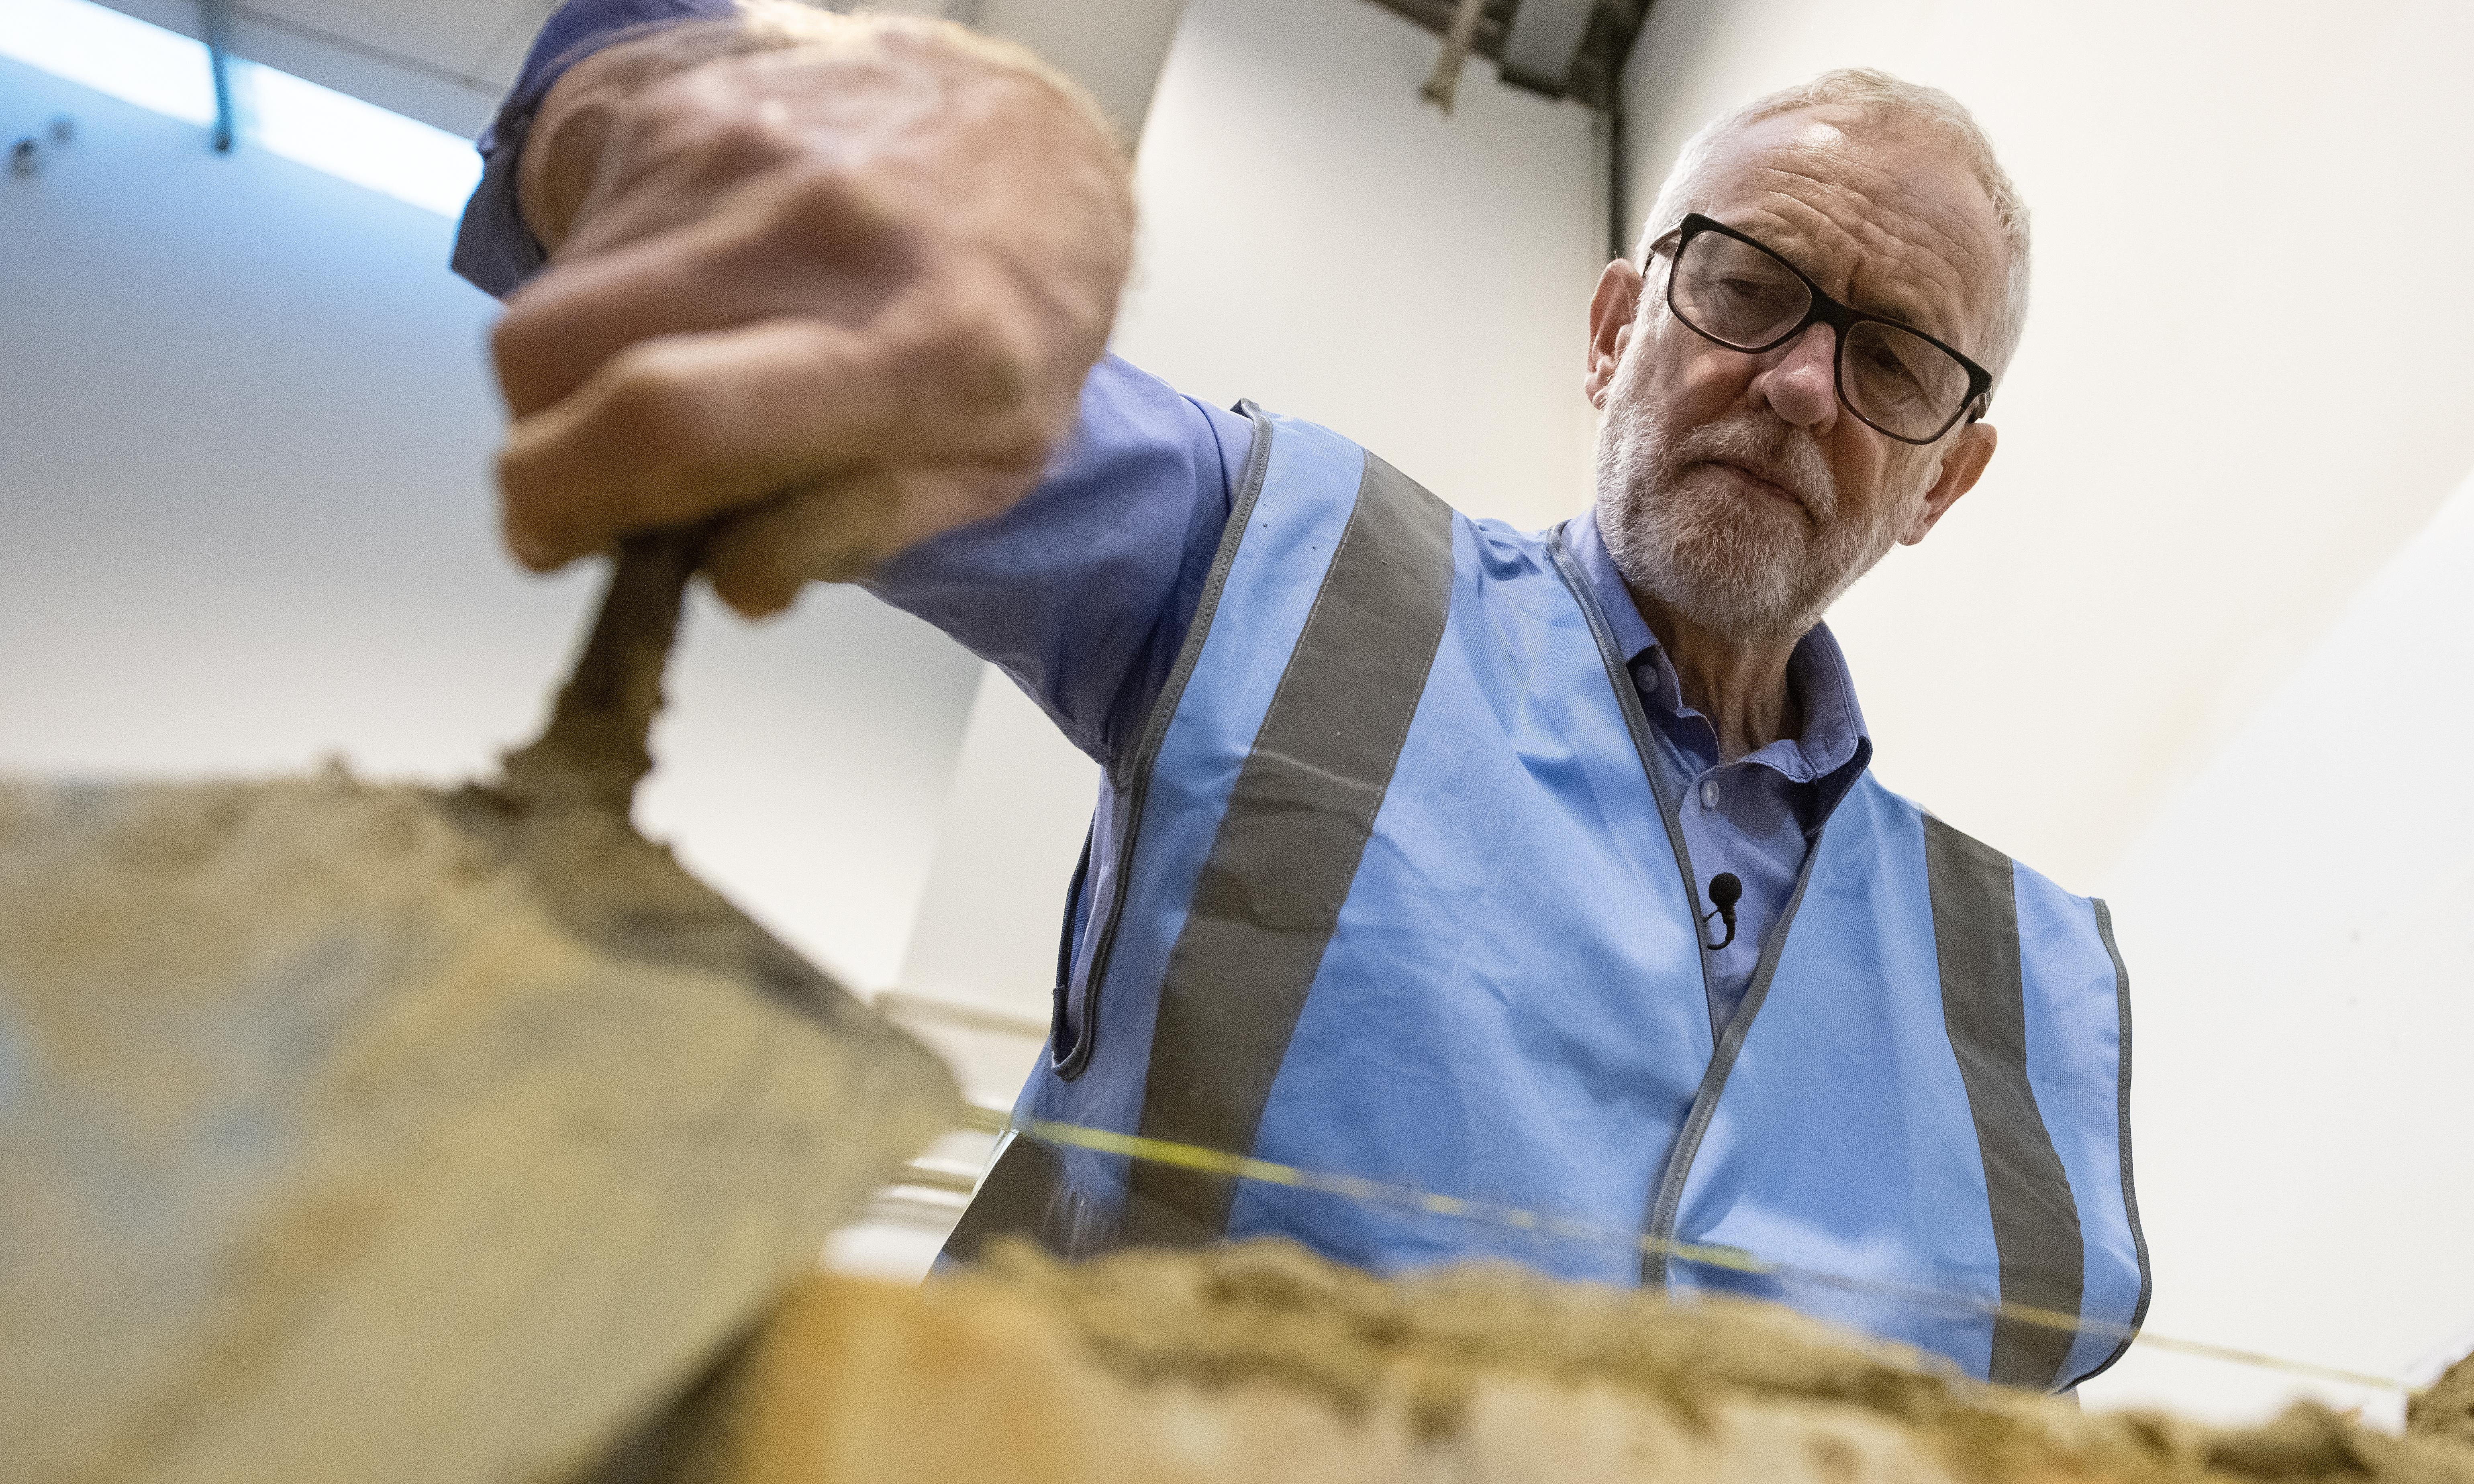 Revolutionary and eminently doable: our critic on Labour's housing policy